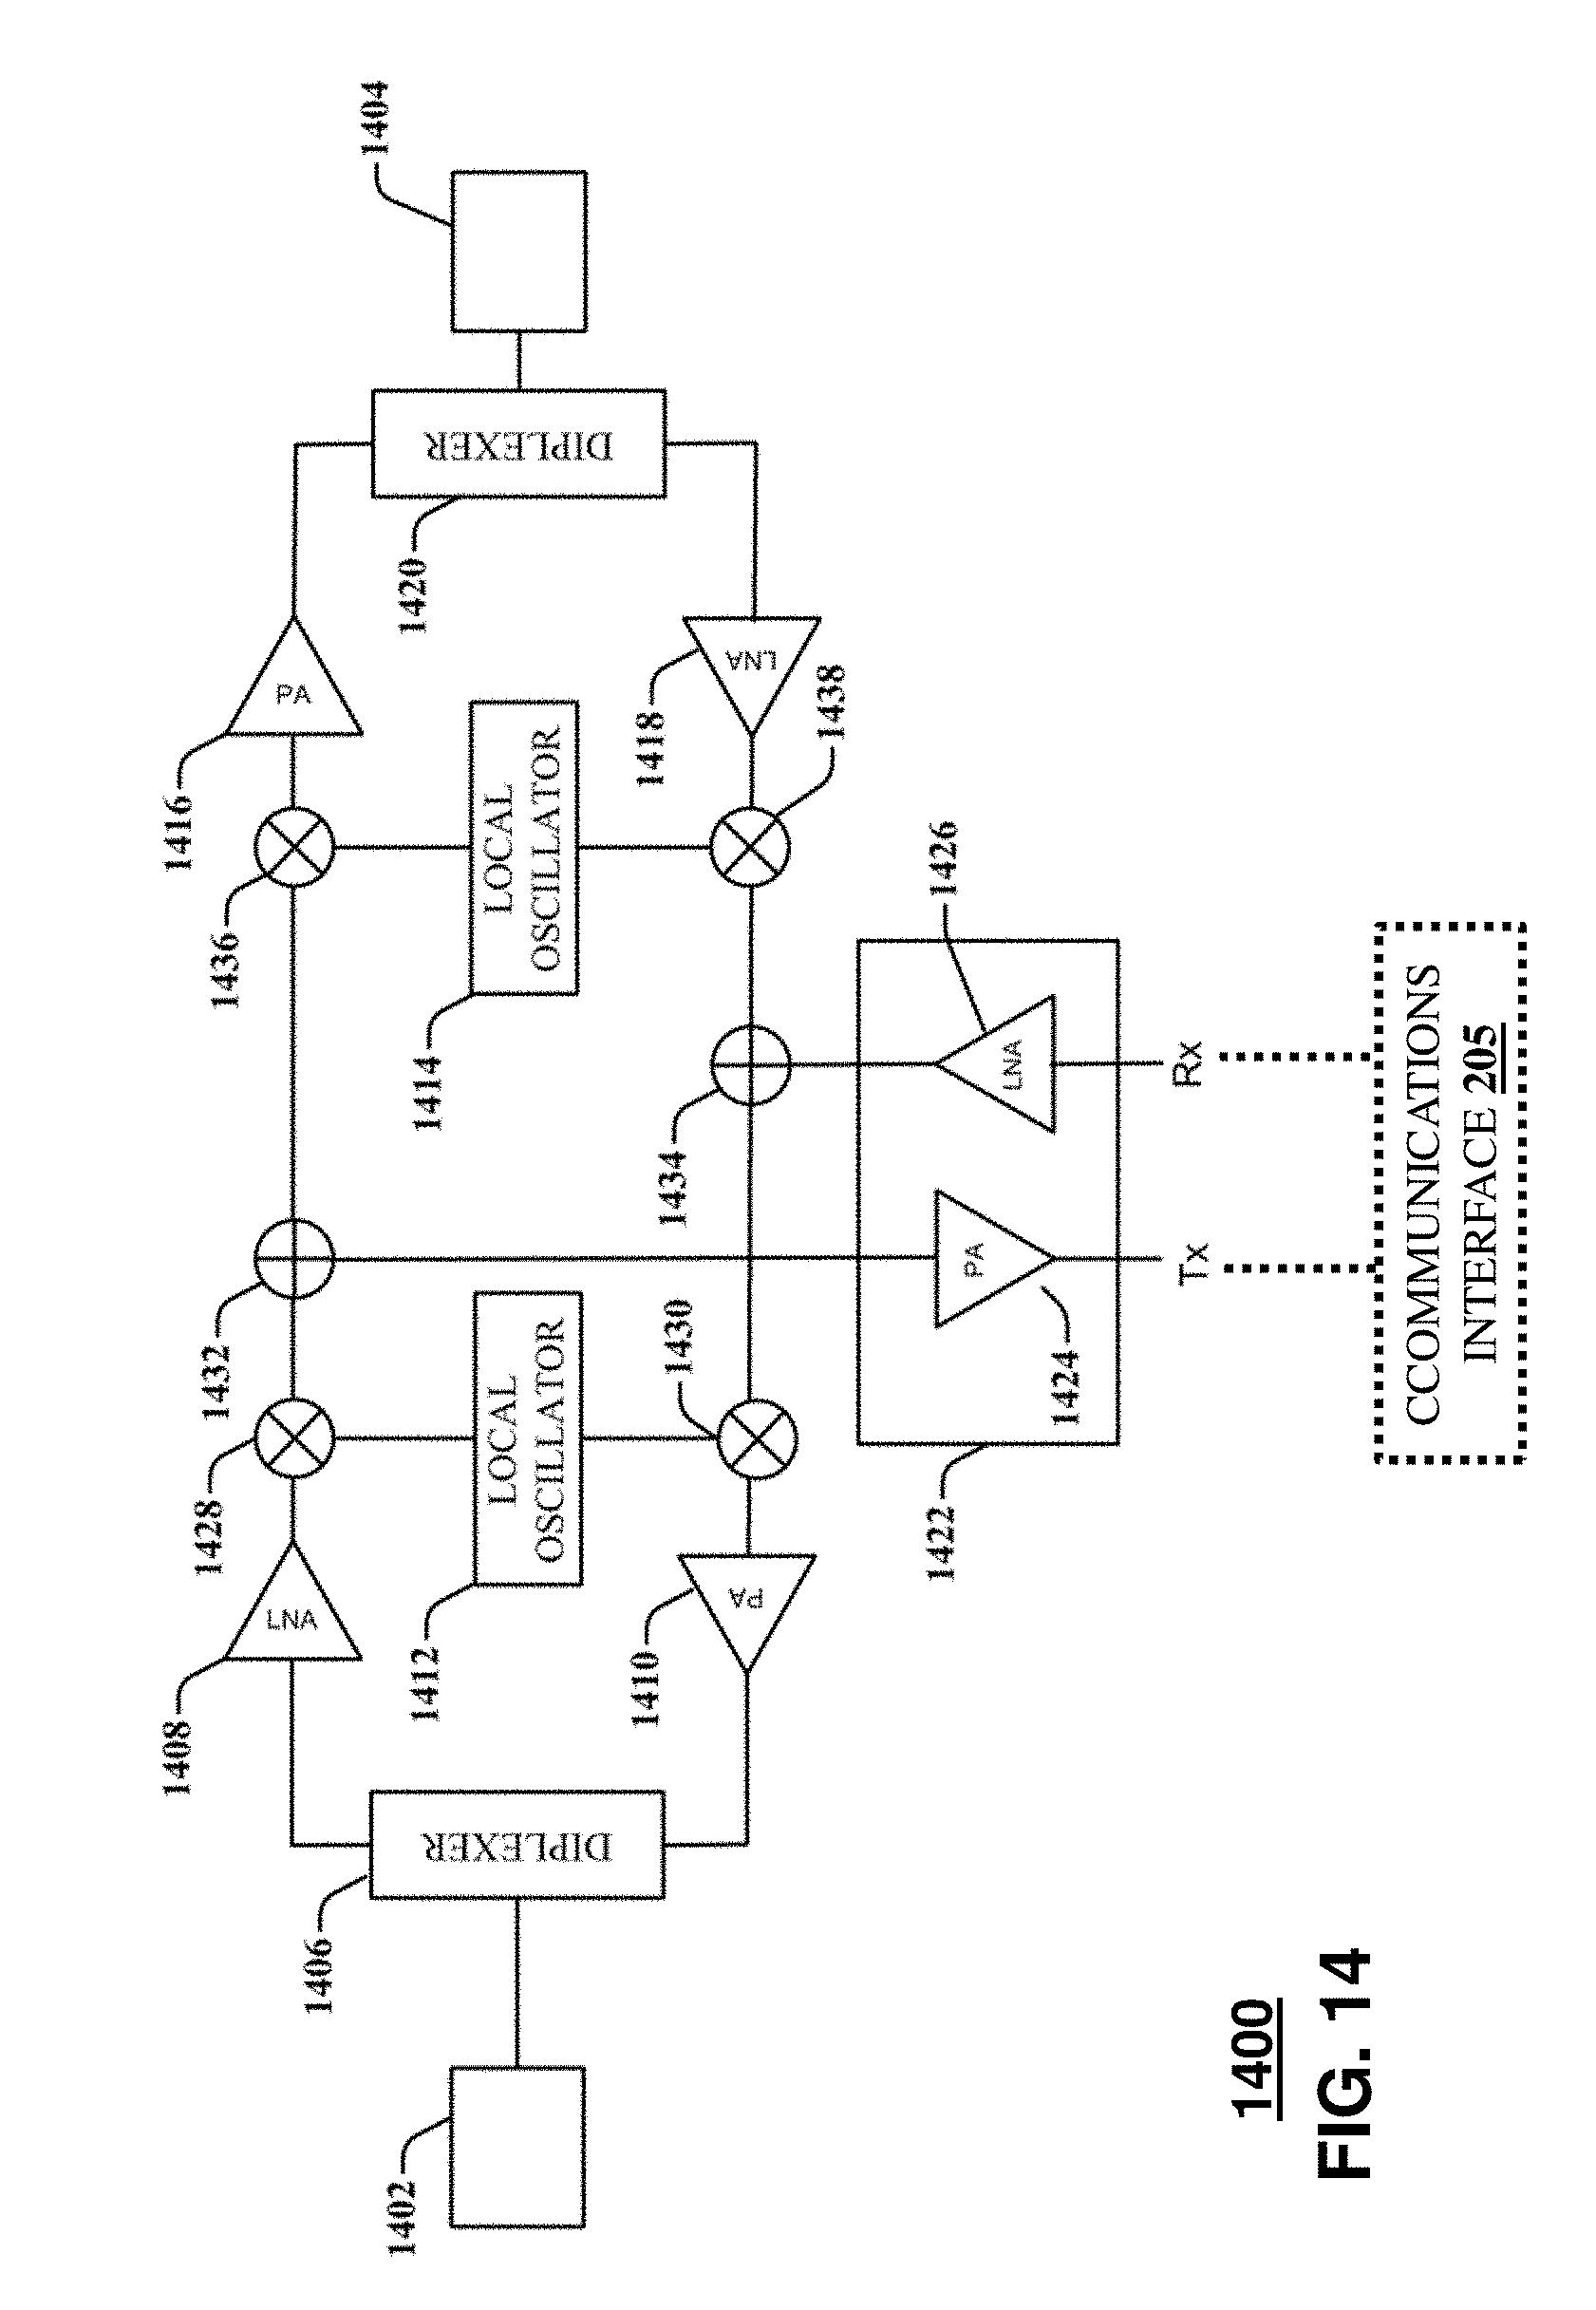 Us9769128b2 Method And Apparatus For Encryption Of Communications Hunter Dsp Wiring Diagram Over A Network Google Patents